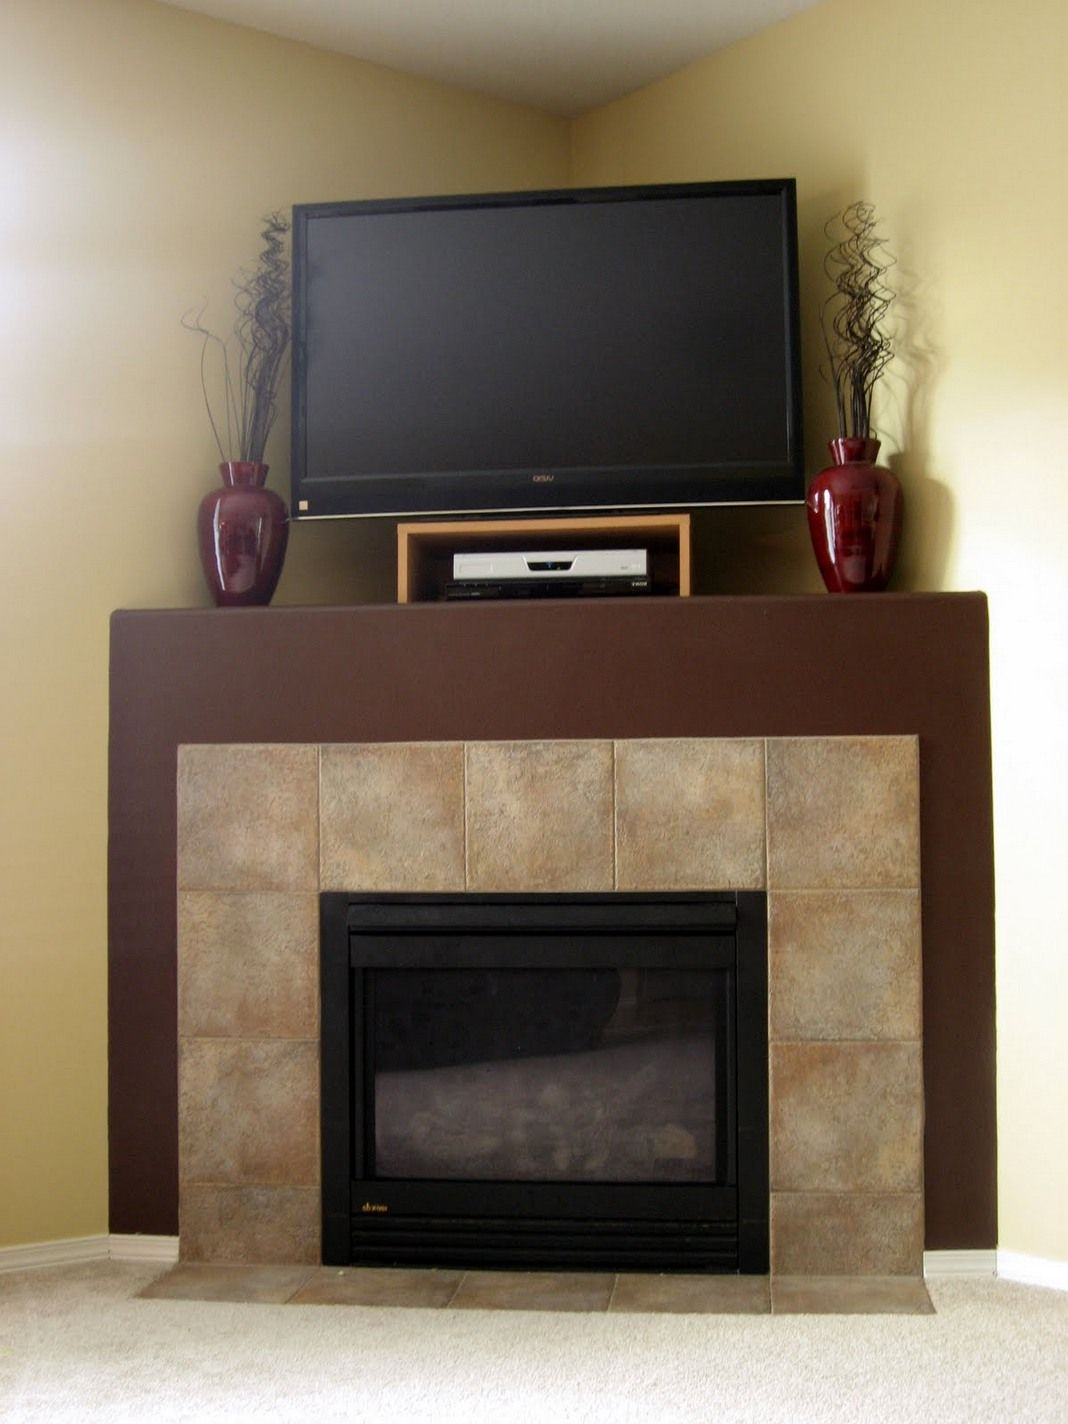 Corner Gas Fireplace Design Ideas 20 of the most amazing modern fireplace ideas Find This Pin And More On House Ideas Beautiful Corner Fireplace